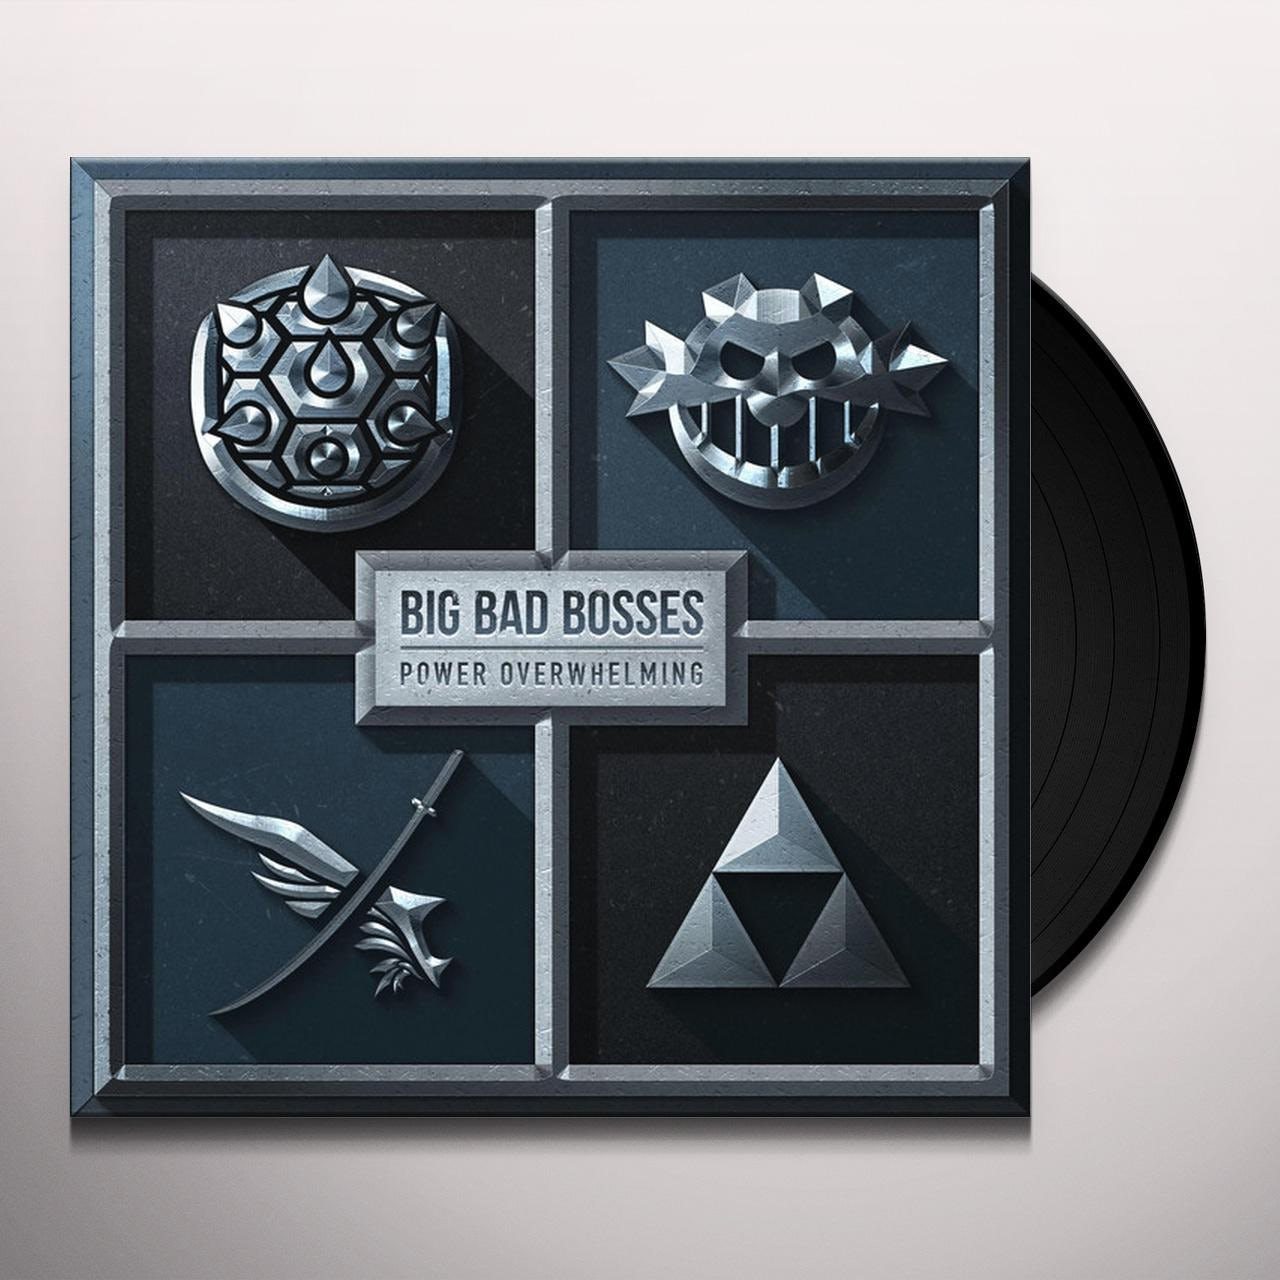 Vinylboden Bad Big Bad Bosses Power Overwhelming Vinyl Record